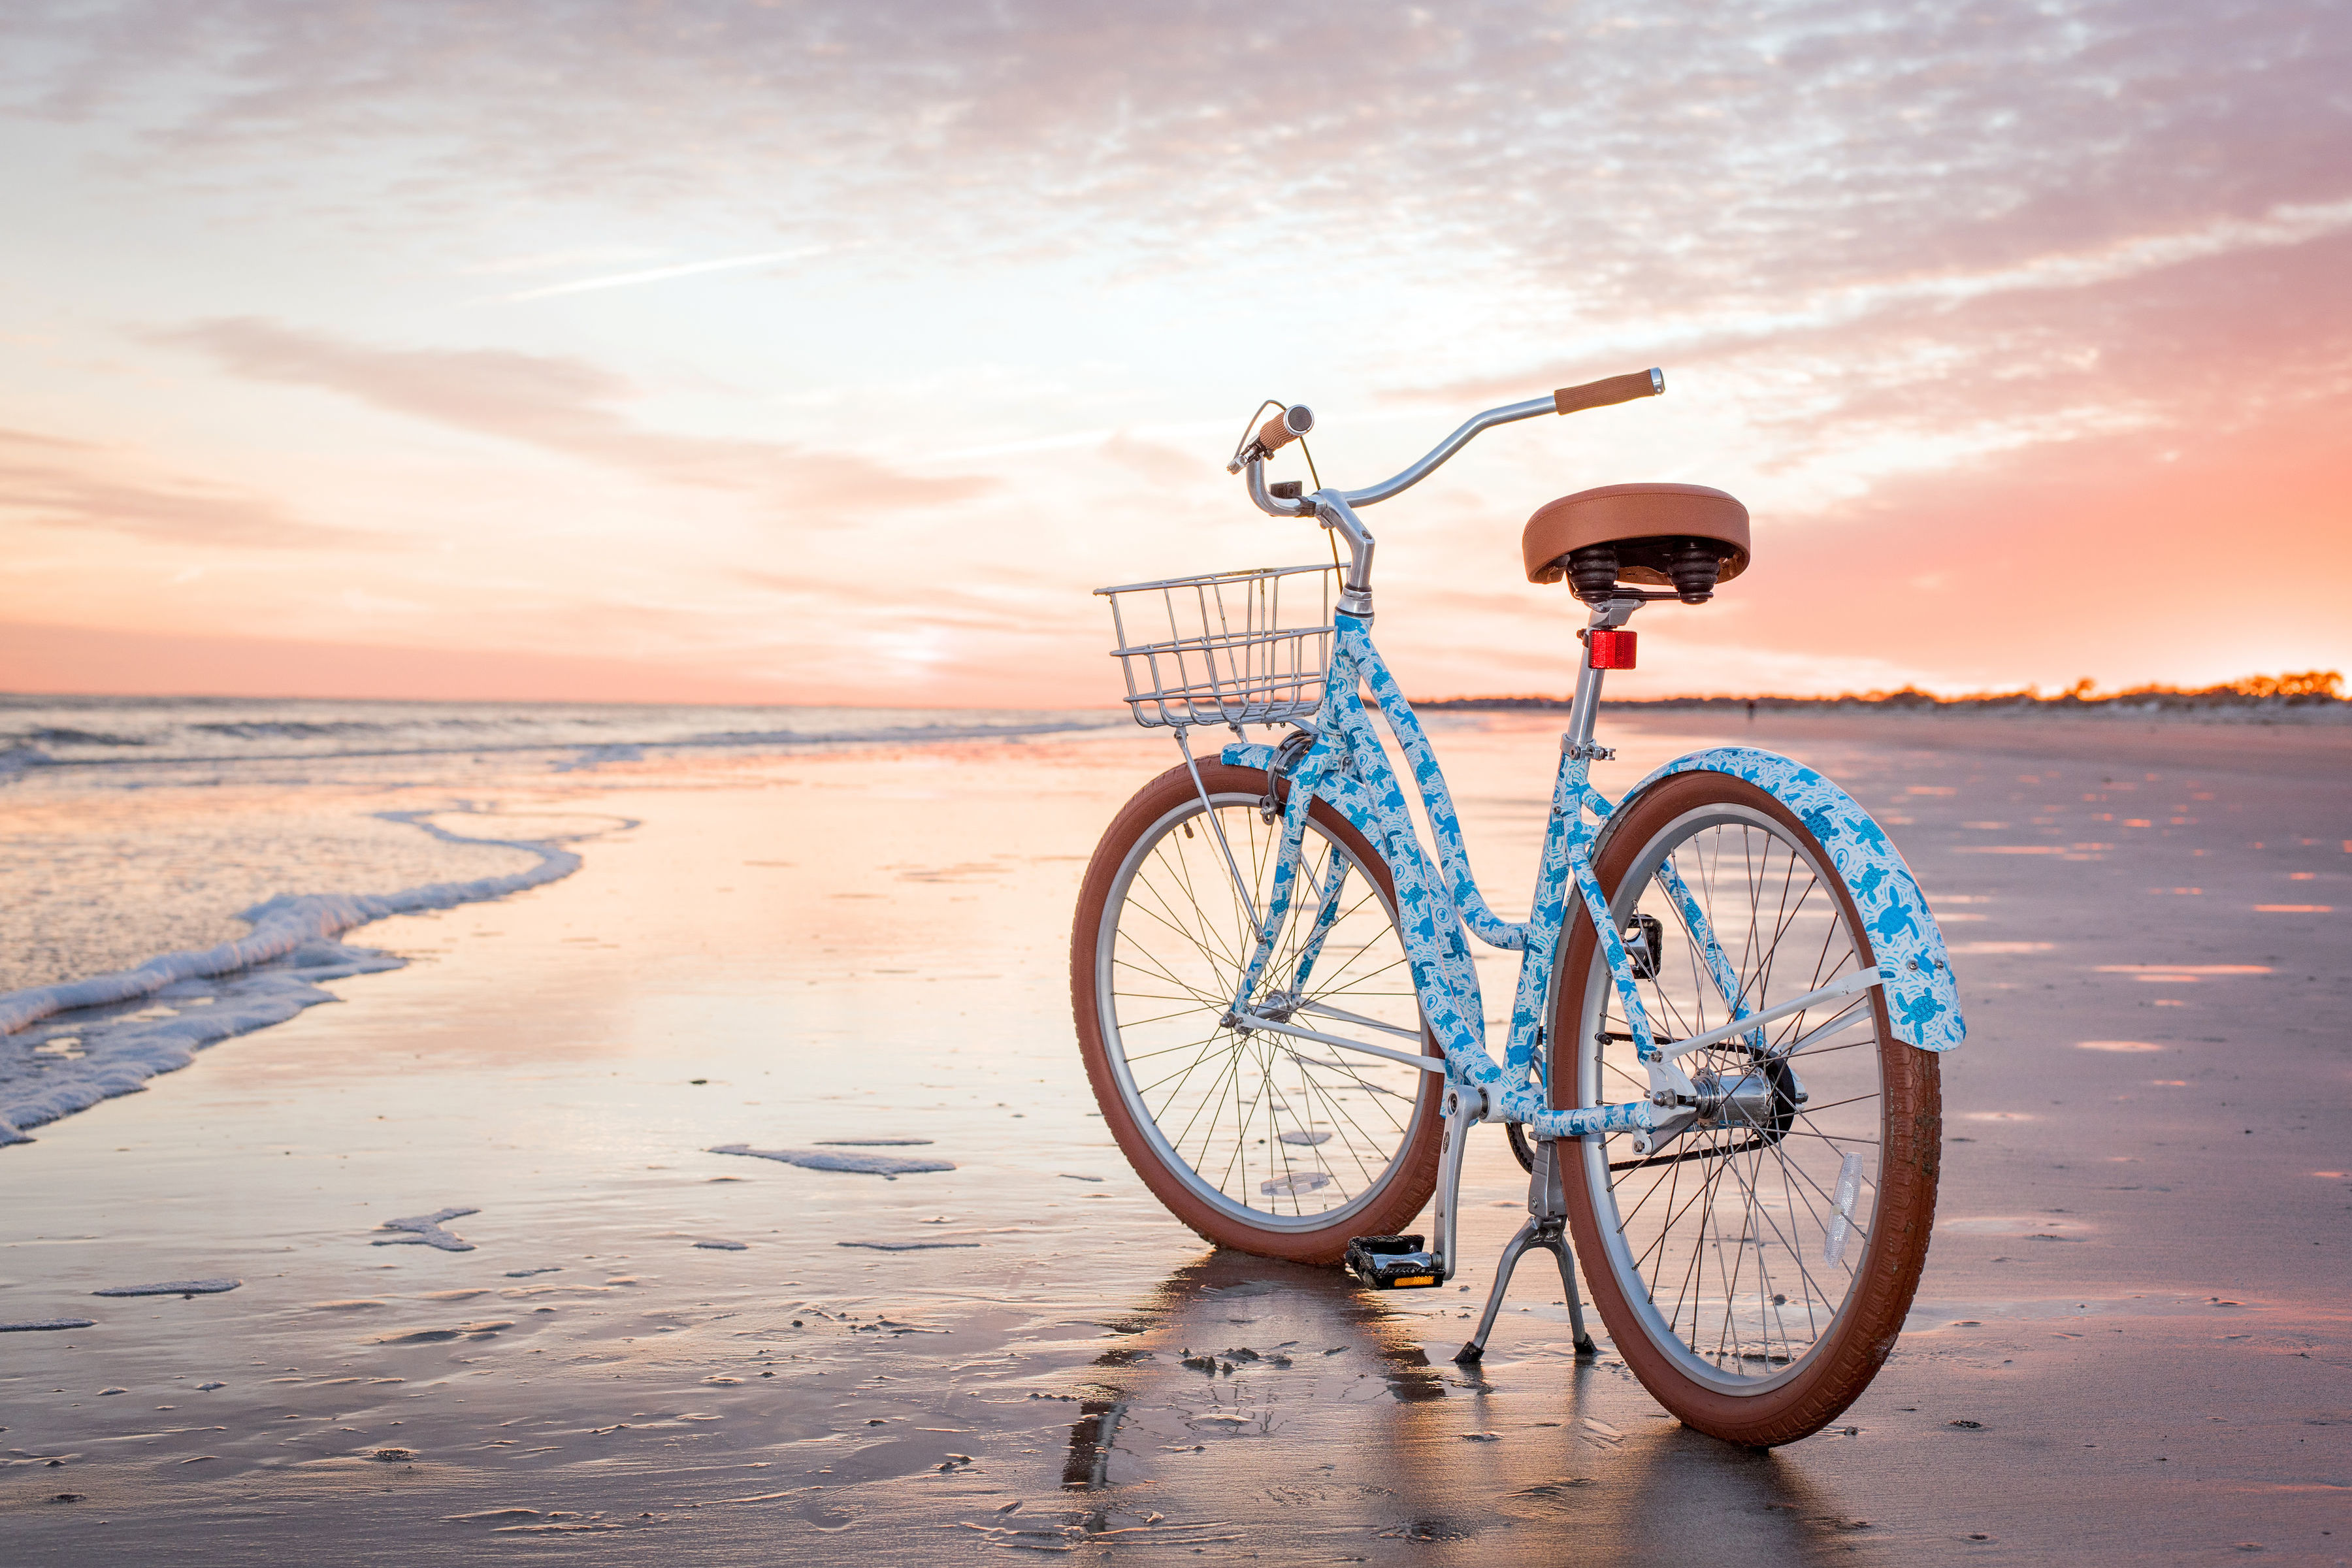 Cruiser Bike For Beachjpg